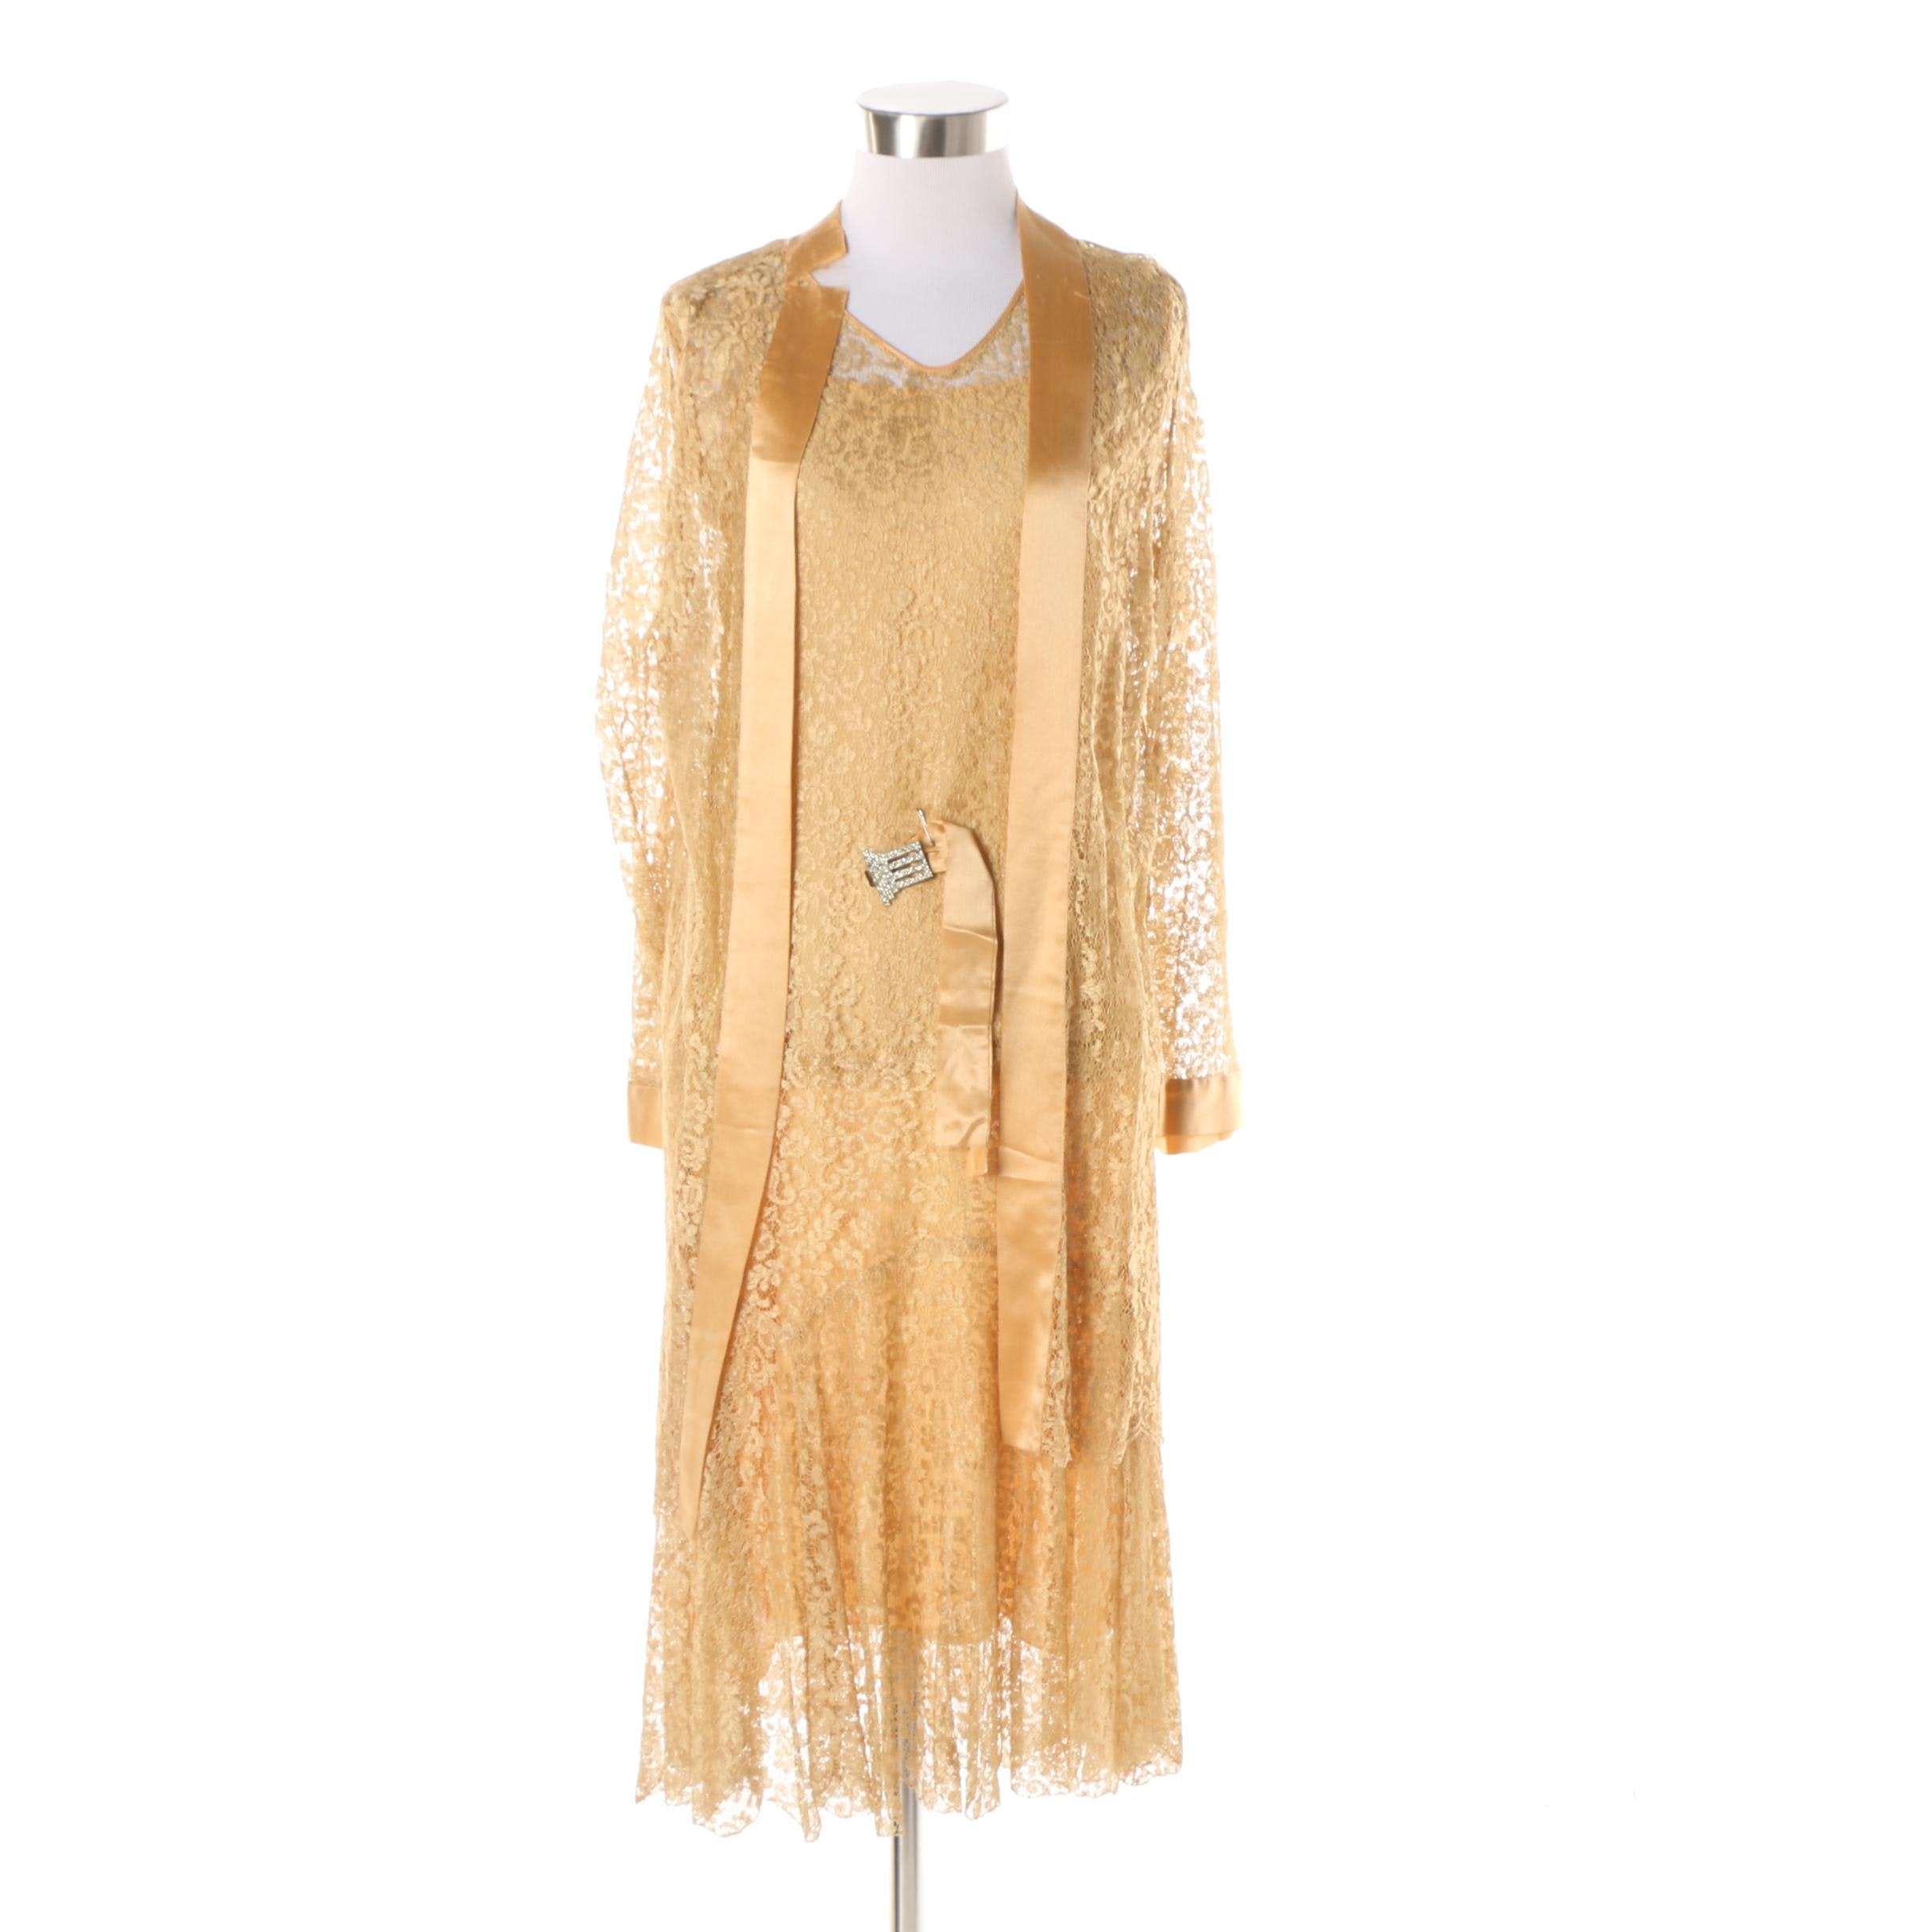 Circa 1920s Gold Lace Dress and Jacket with Art Deco Rhinestone Belt Buckle